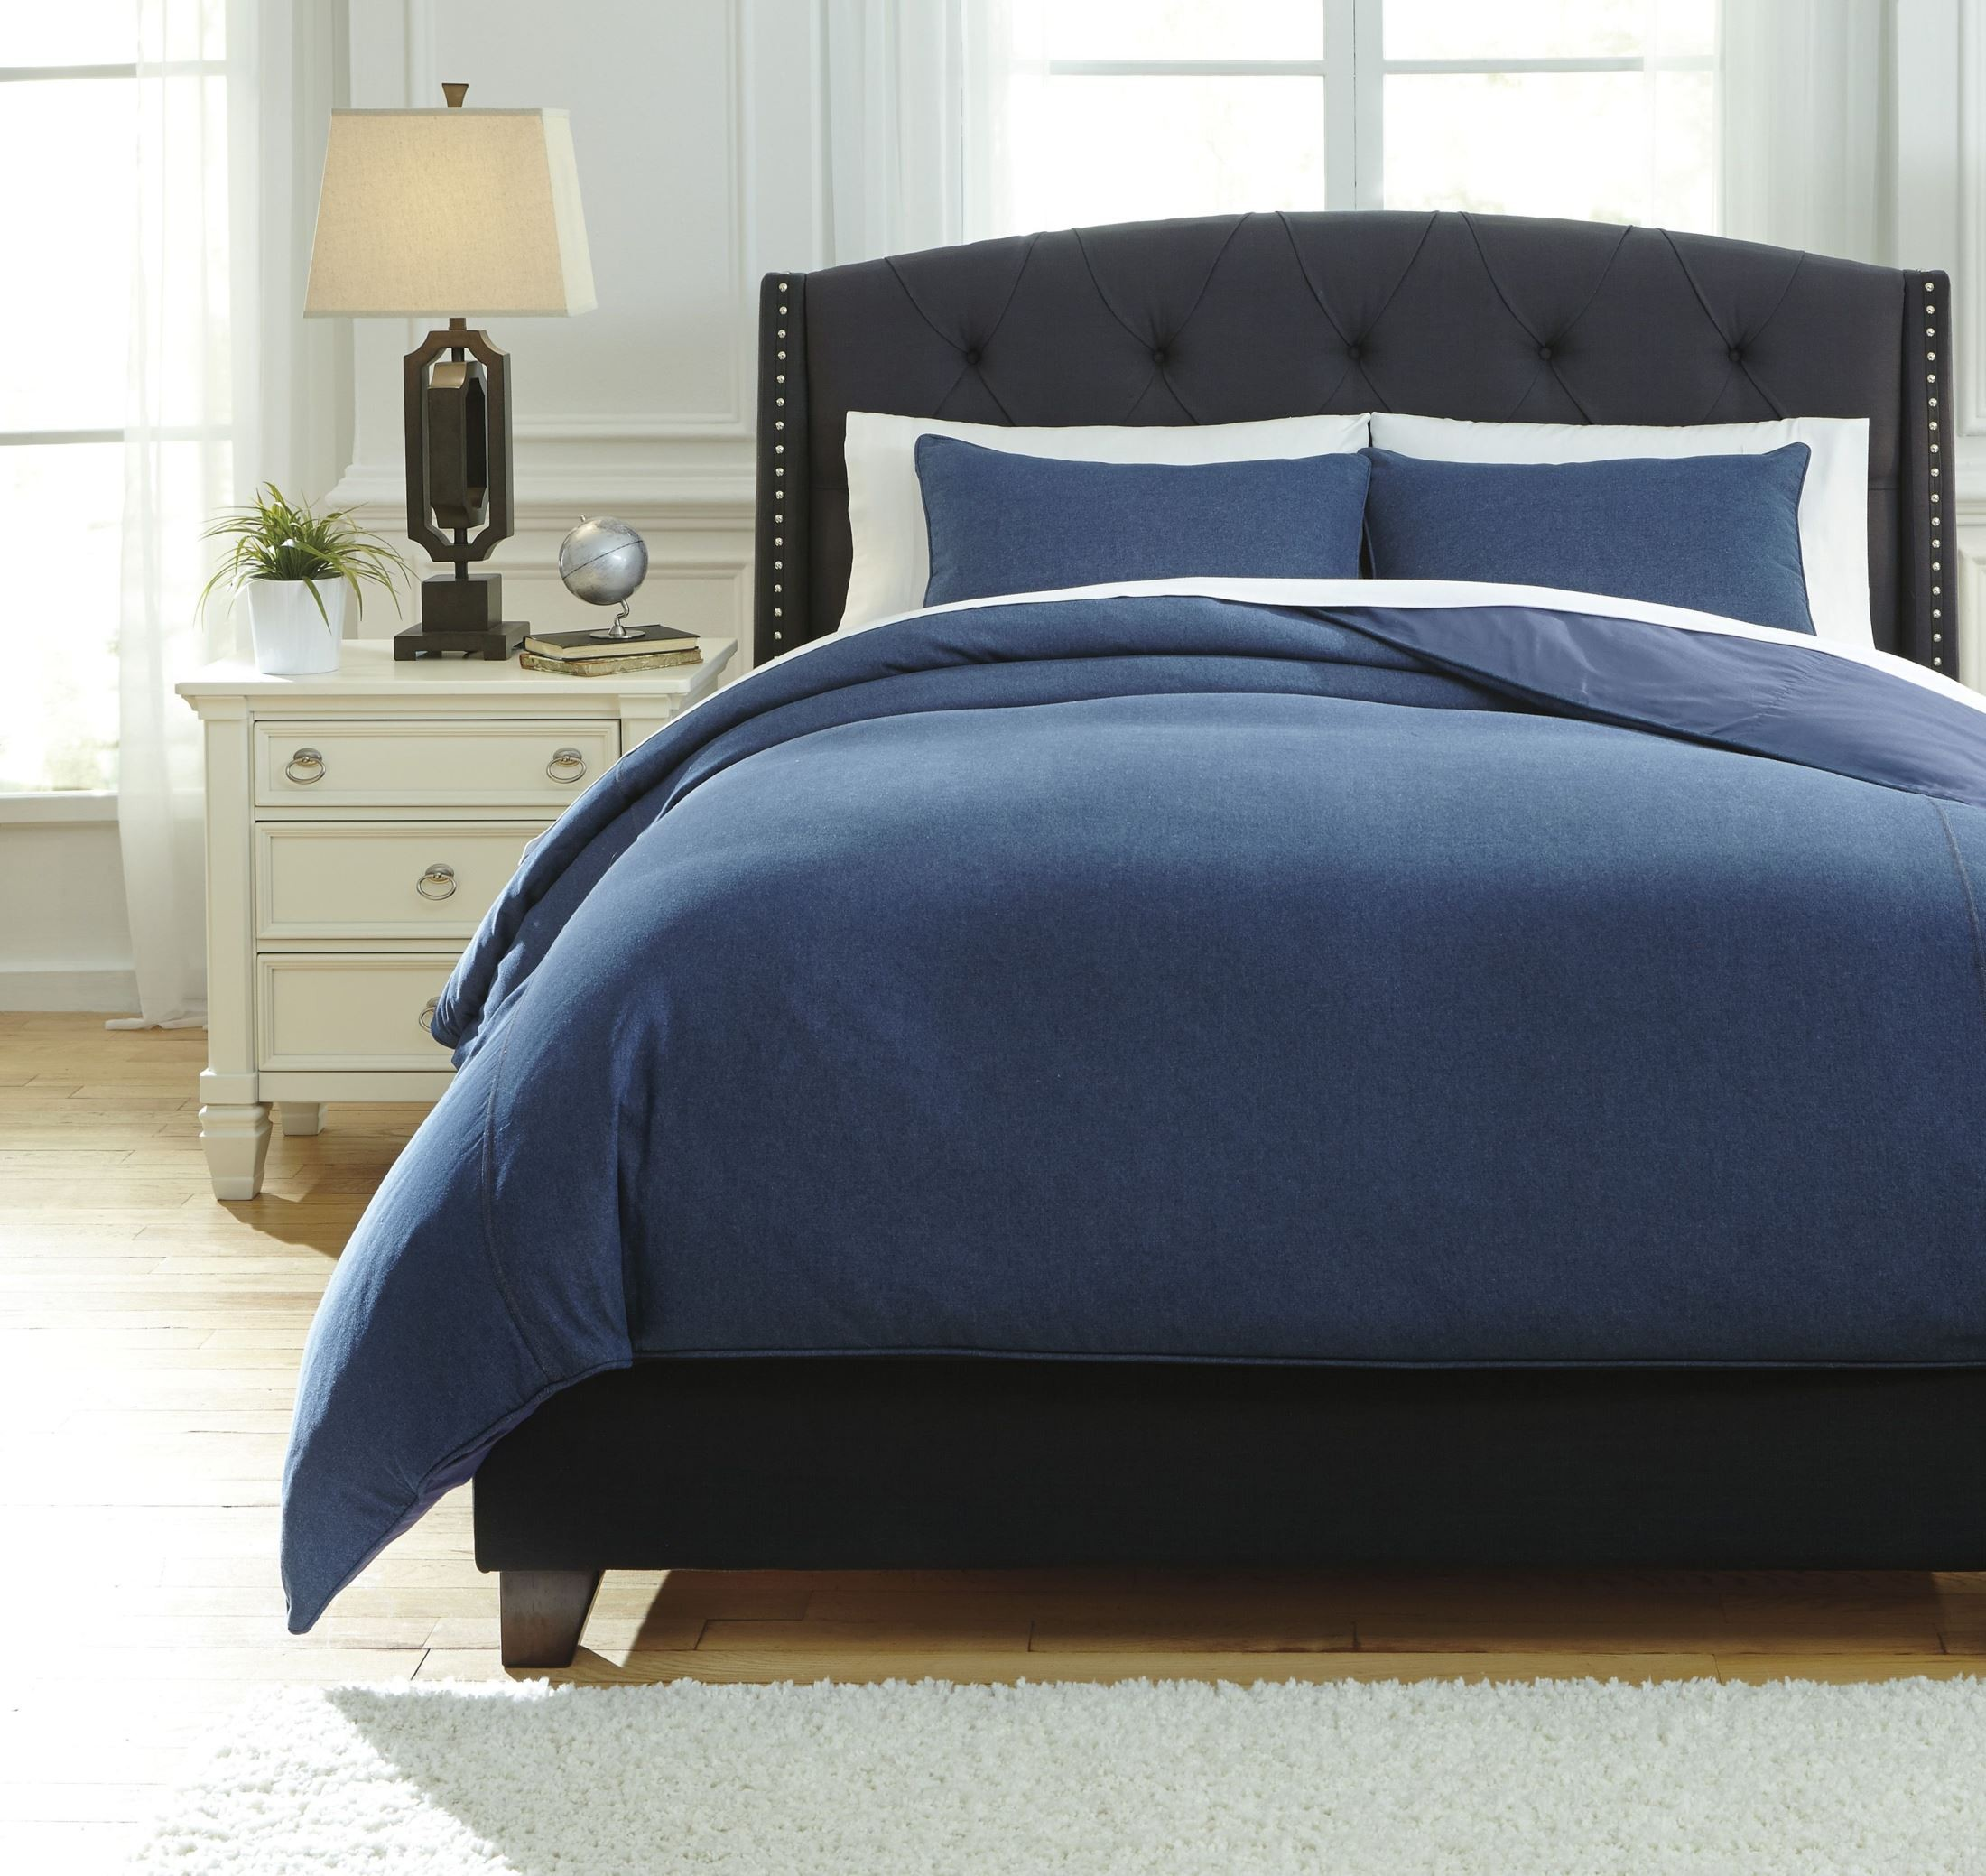 SUSYBAO 3 Pieces Duvet Cover Set % Natural Washed Cotton Denim Blue King Size 1 Duvet Cover 2 Pillowcases Luxury Quality Durable Ultra Soft Breathable Fade Resistant Bedding Set .